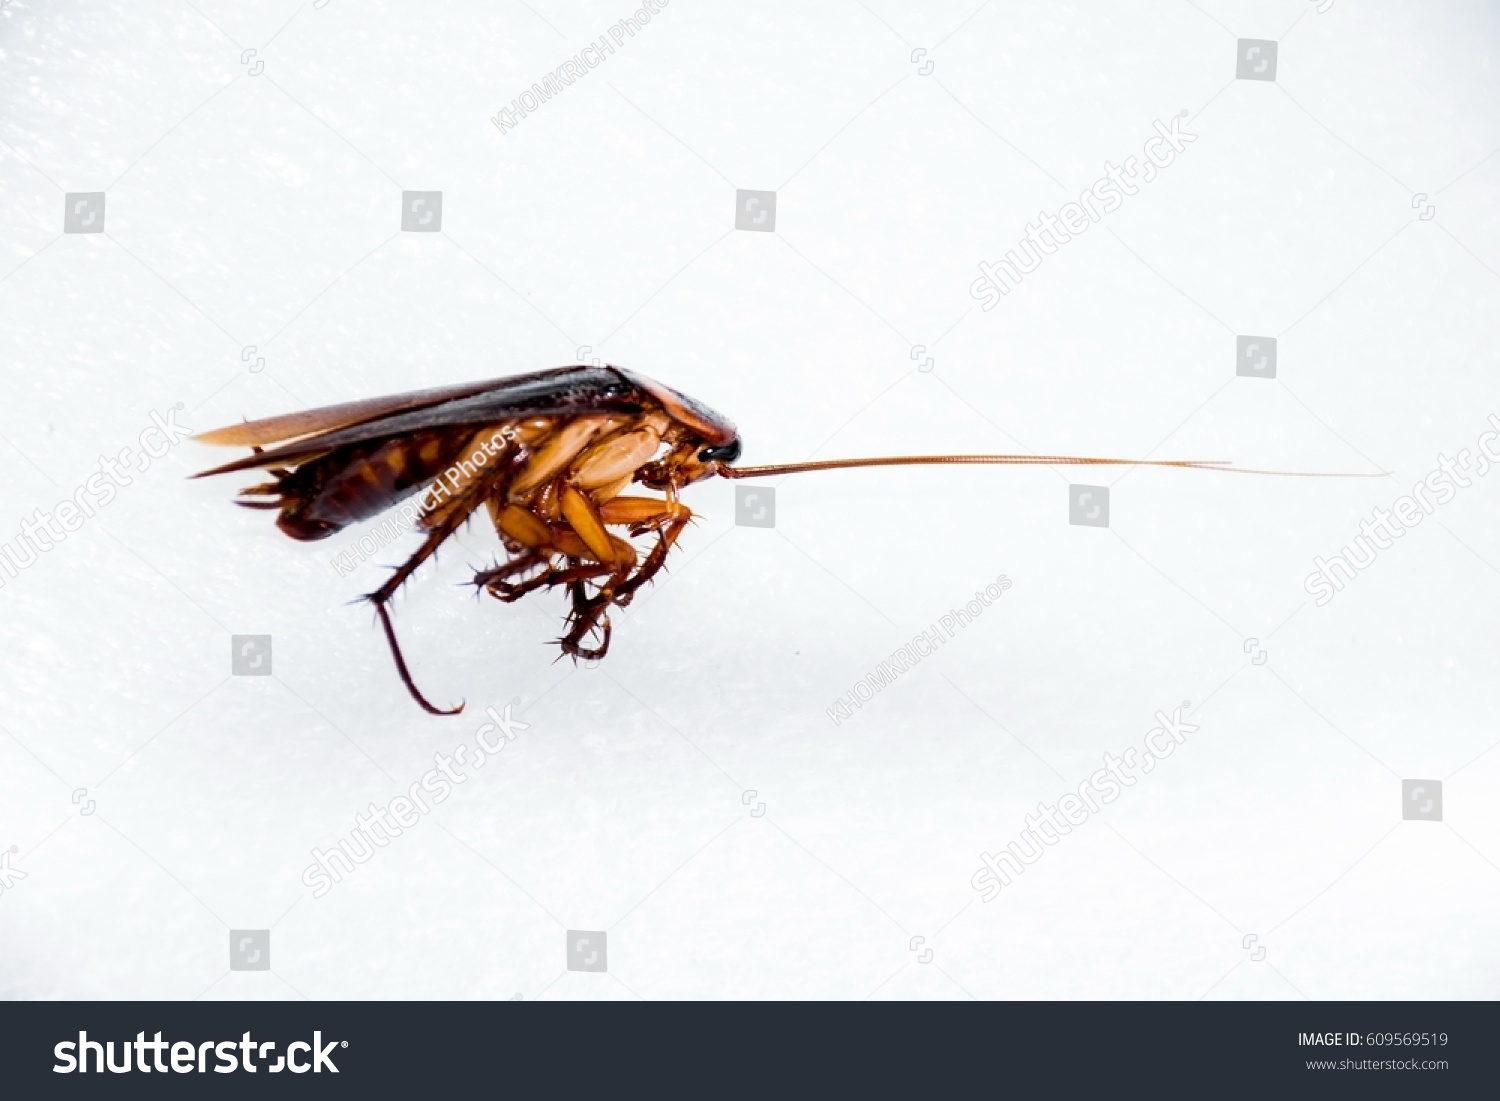 Cockroaches Dying Stock Photo (Royalty Free) 609569519 - Shutterstock